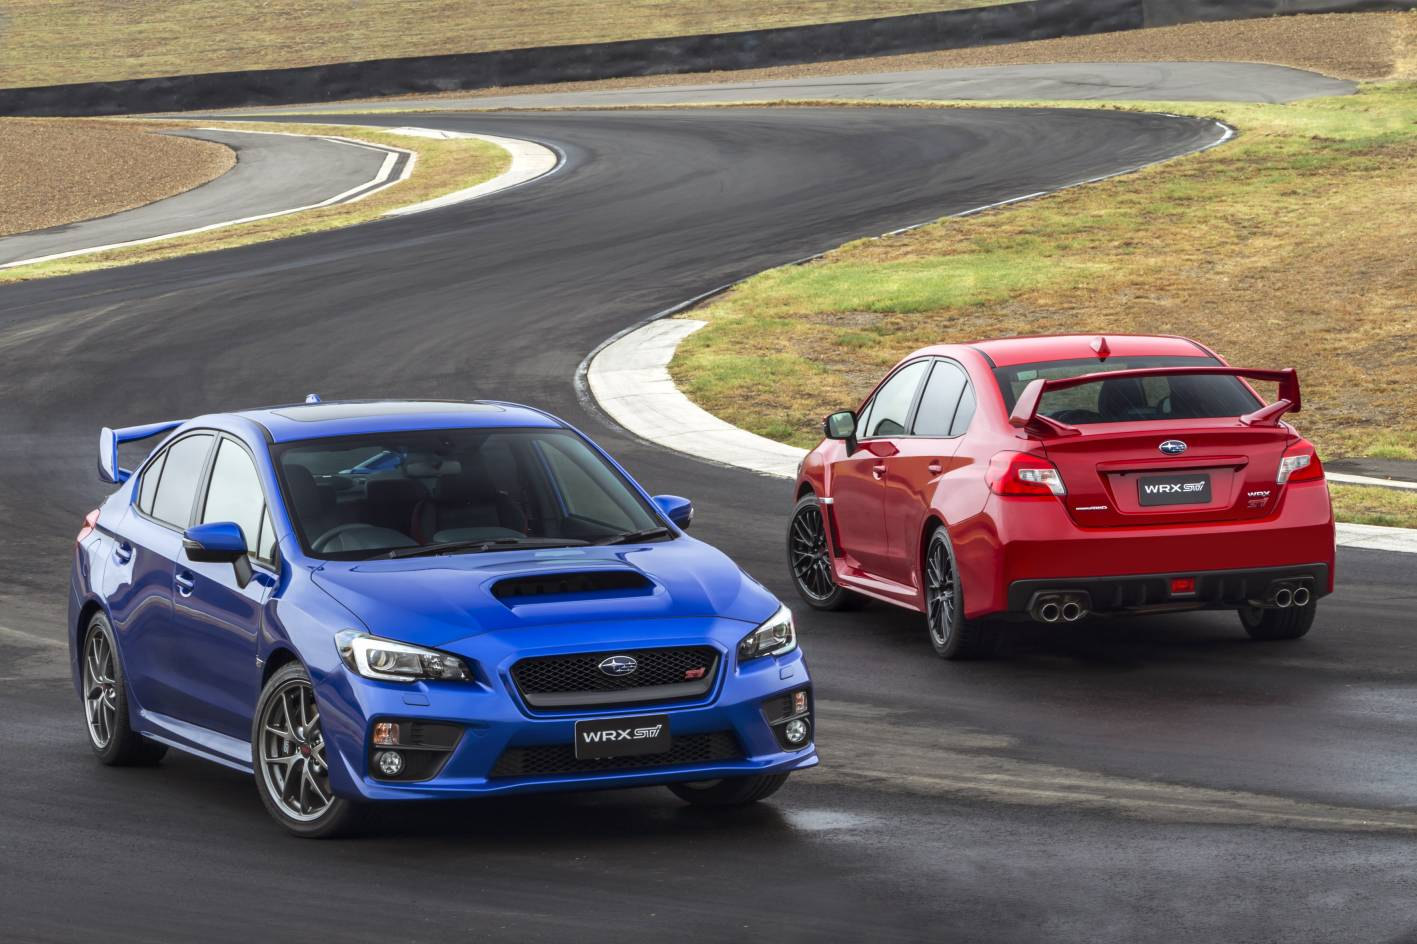 subaru cars news 2015 wrx sti pricing and specification. Black Bedroom Furniture Sets. Home Design Ideas